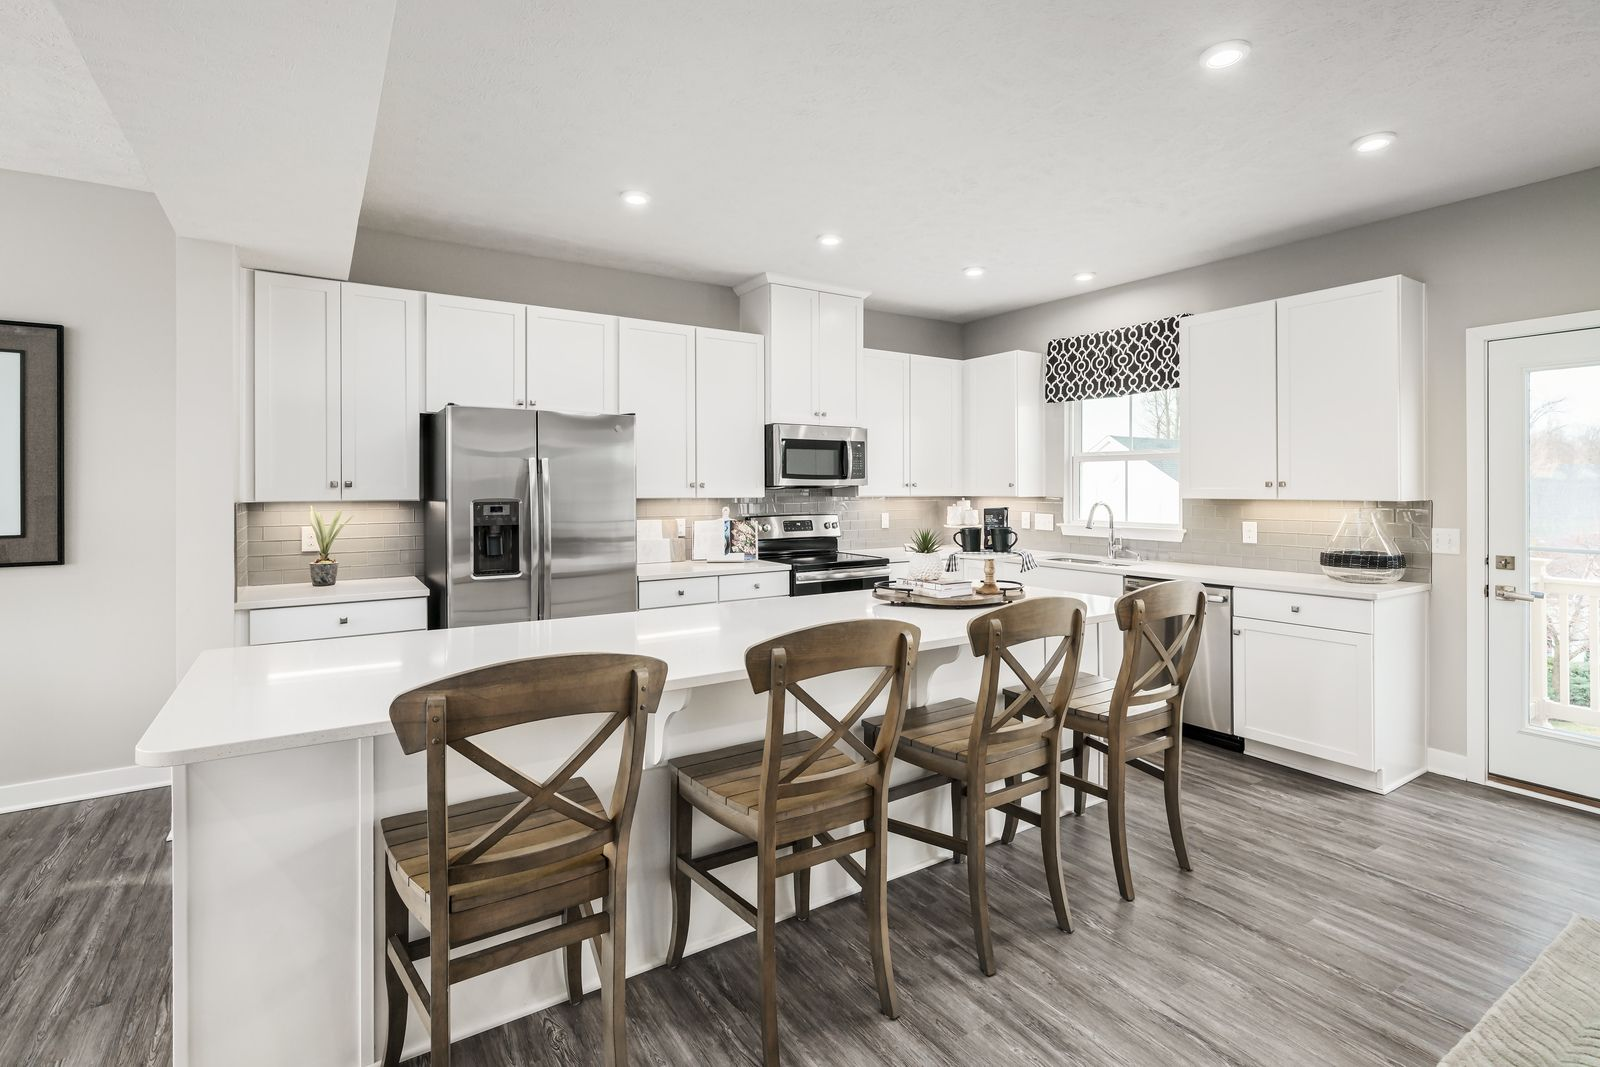 Kitchen featured in the Wexford w/ 4' Extension & Rec Rm By Ryan Homes in Akron, OH